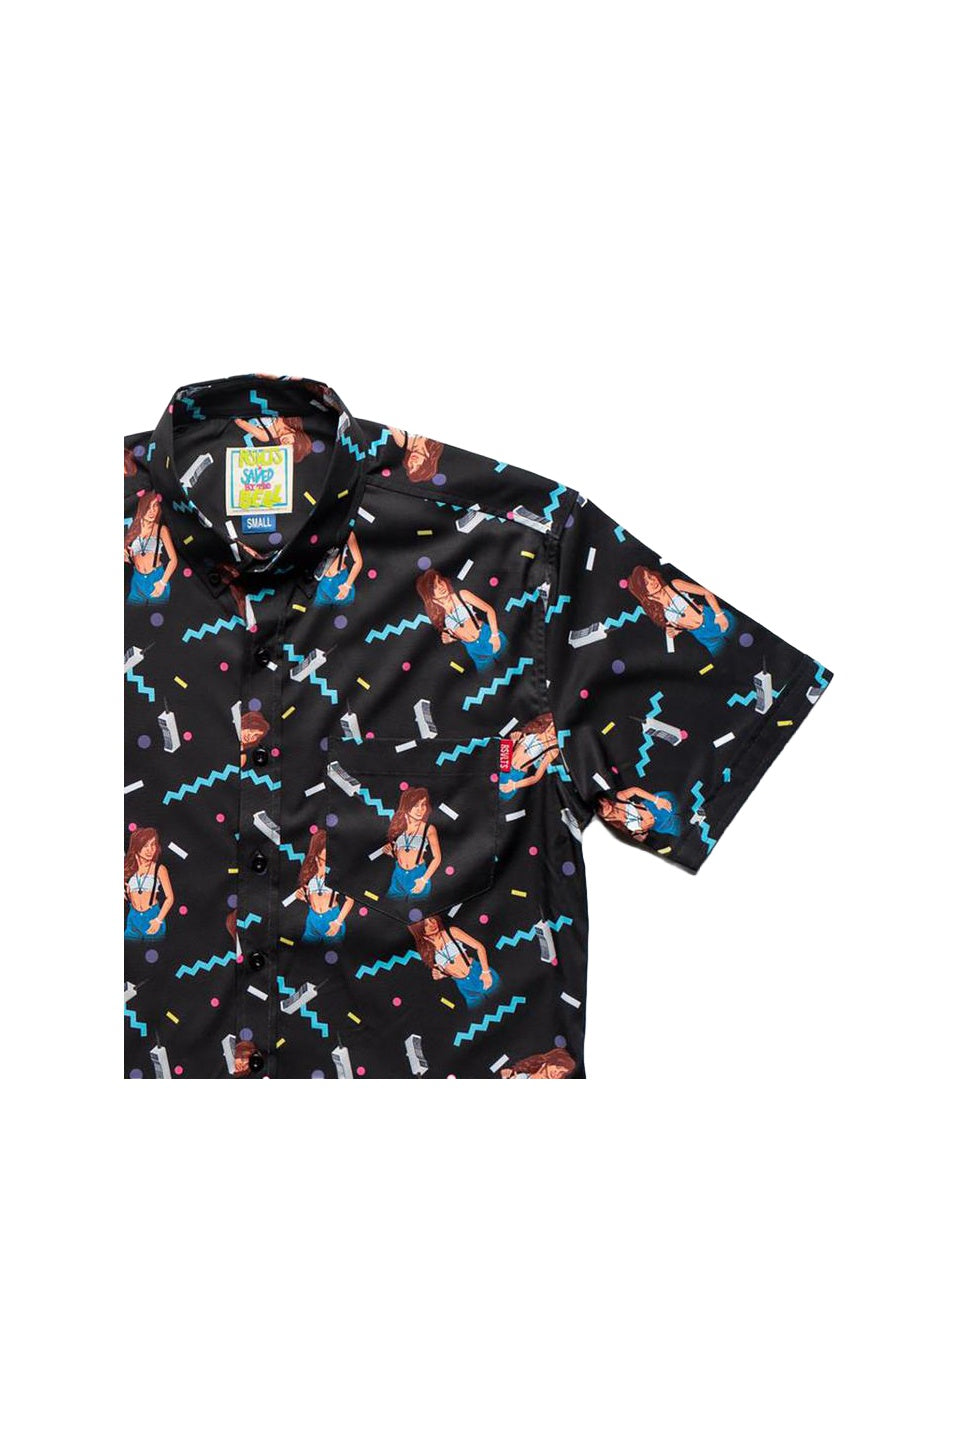 Kelly Kapowski Saved By The Bell Short Sleeve Shirt